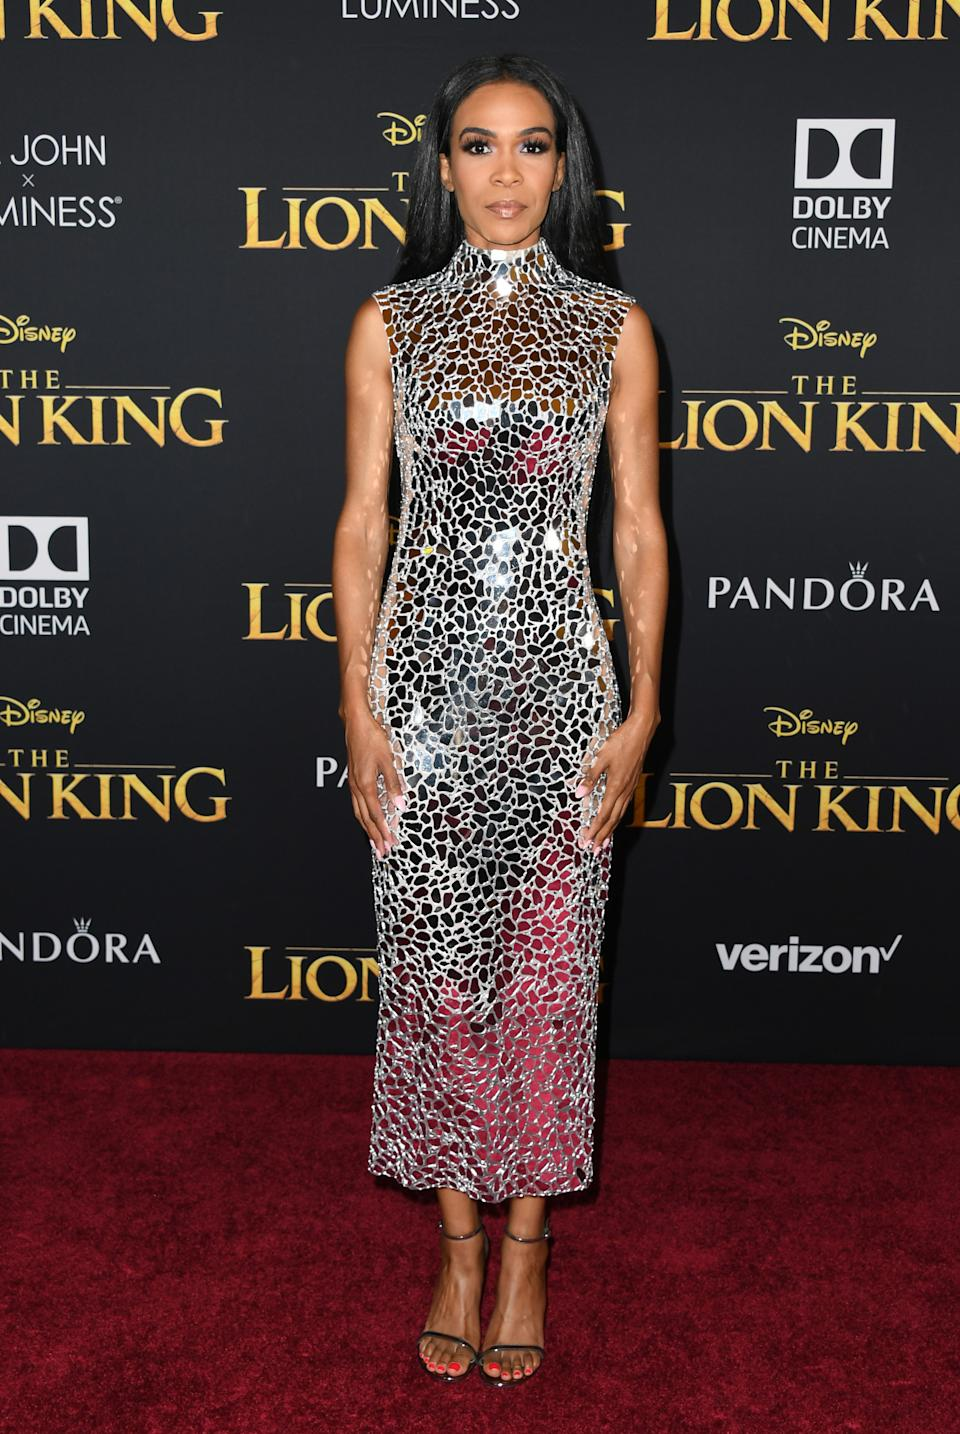 """HOLLYWOOD, CALIFORNIA - JULY 09:  Michelle Williams attends the Premiere Of Disney's """"The Lion King"""" at Dolby Theatre on July 09, 2019 in Hollywood, California. (Photo by Jon Kopaloff/FilmMagic)"""